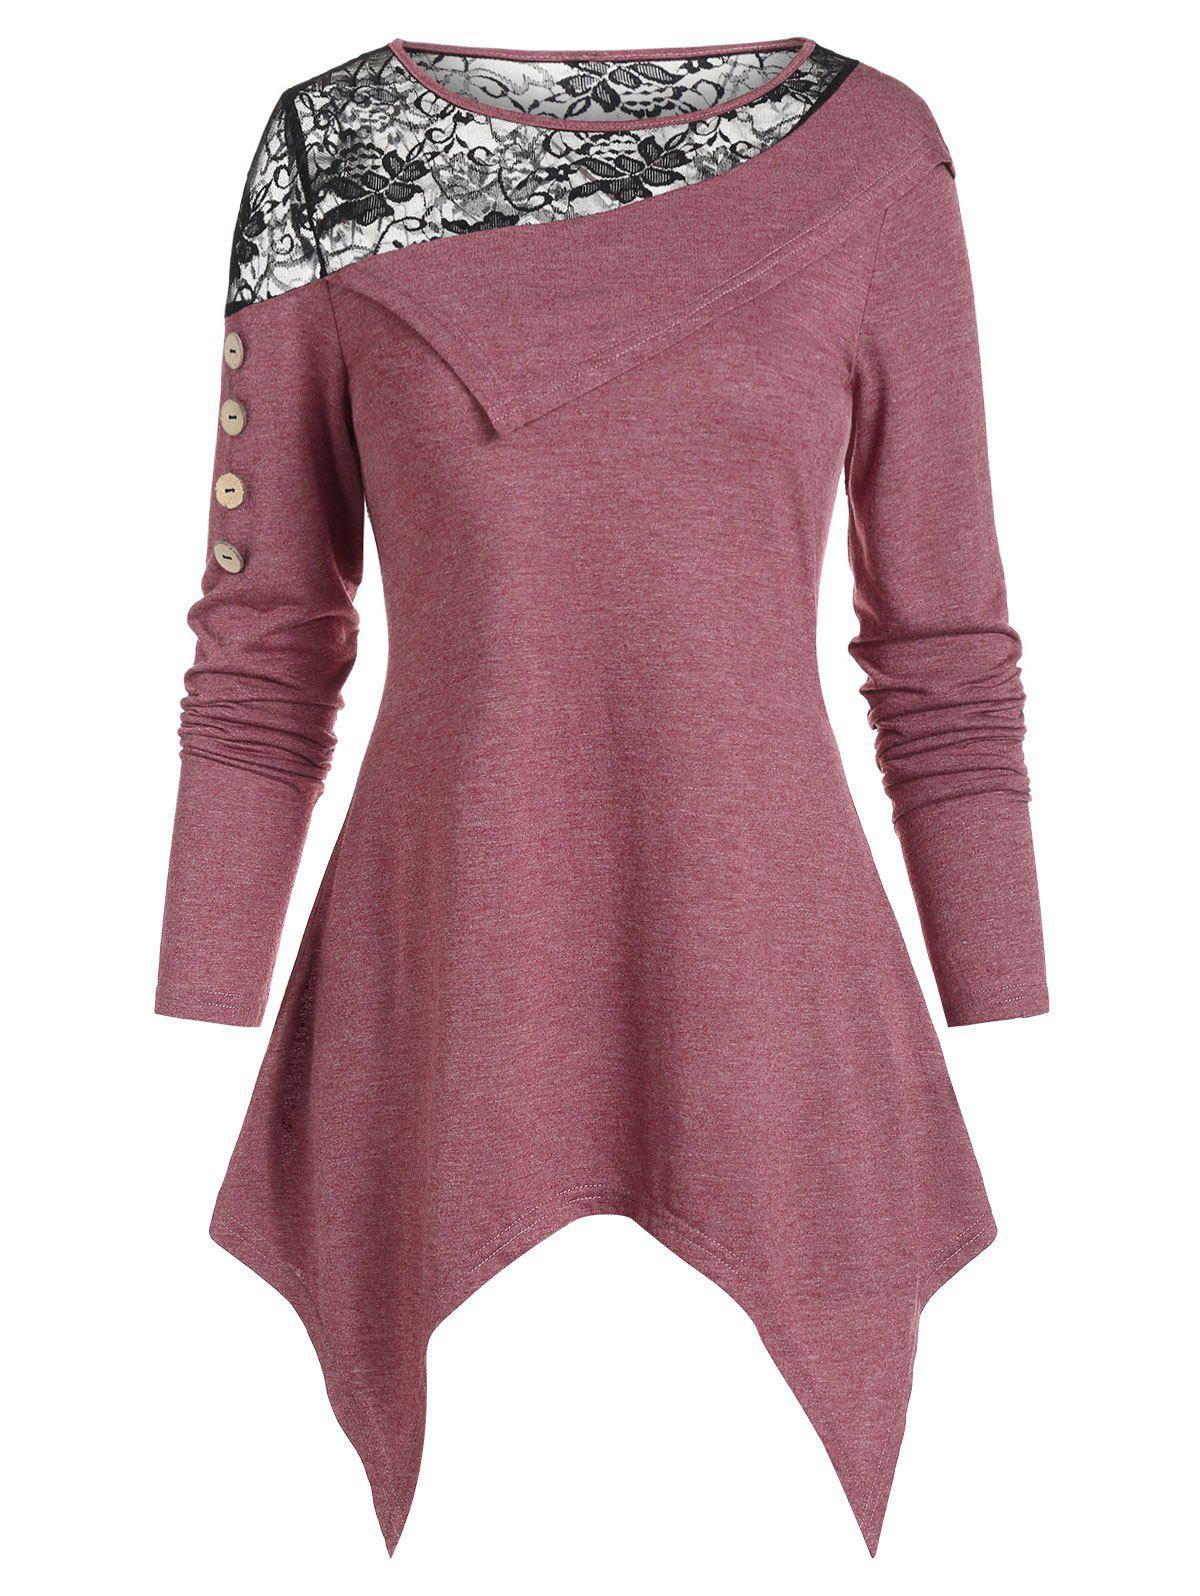 Lace Insert Asymmetric Hem Long Sleeve T Shirt - FIREBRICK XL